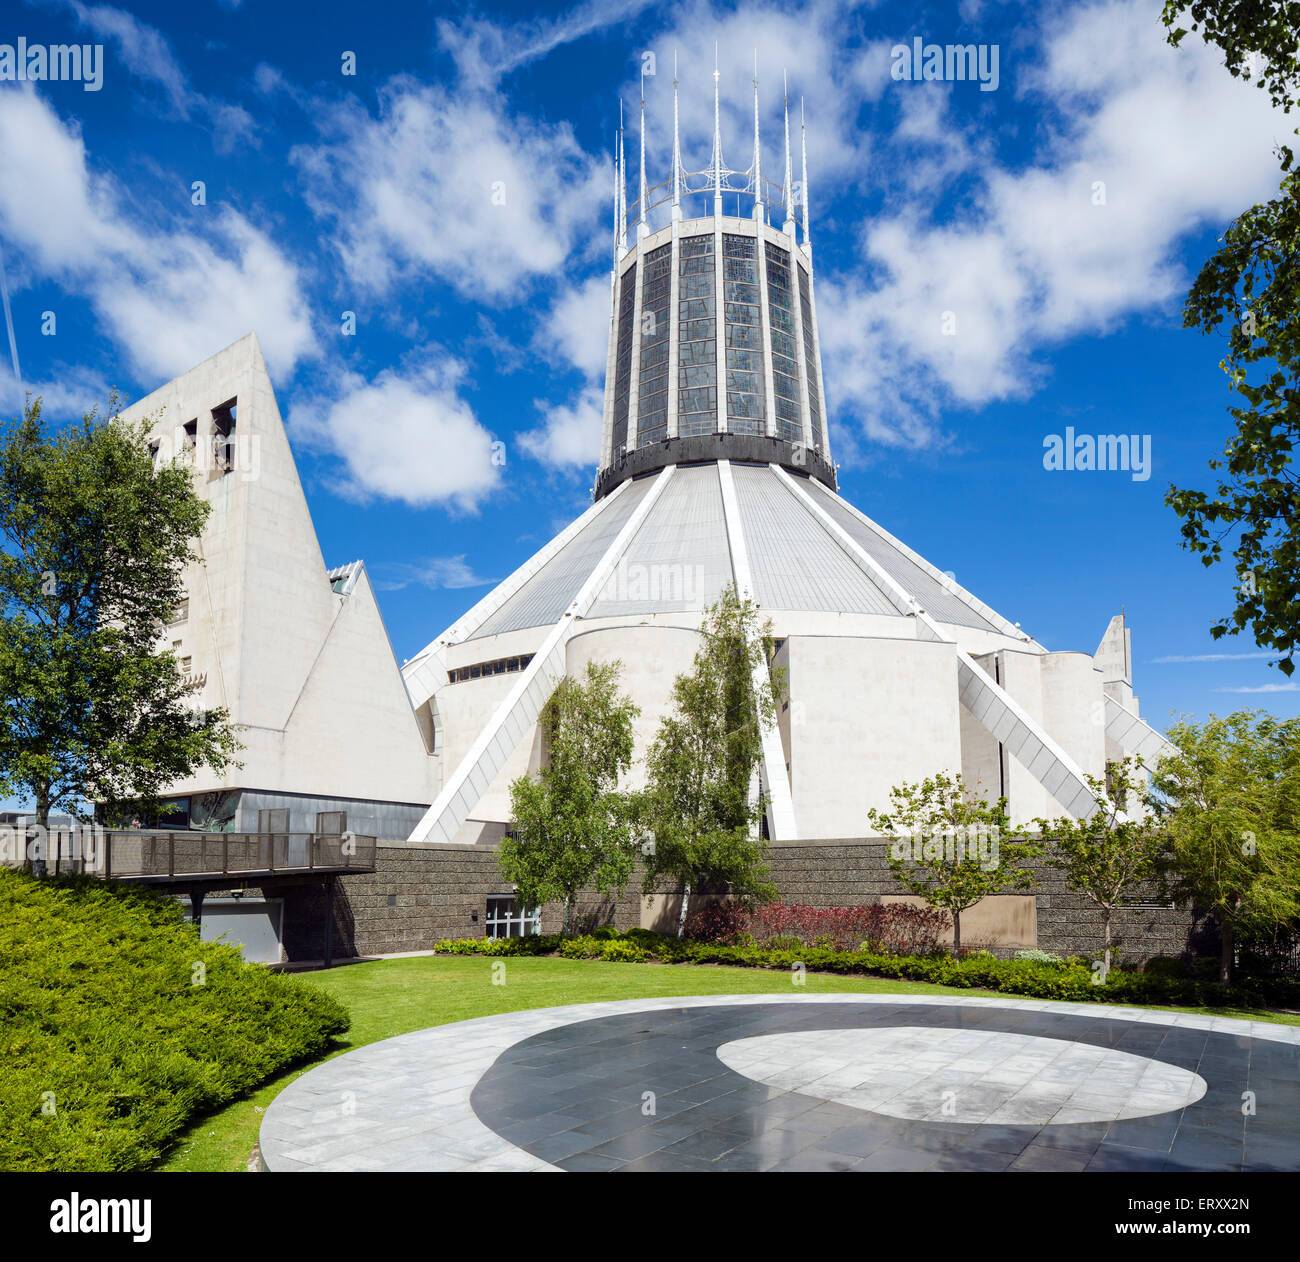 Liverpool Metropolitan Cathedral, Liverpool, Merseyside, England, UK - Stock Image